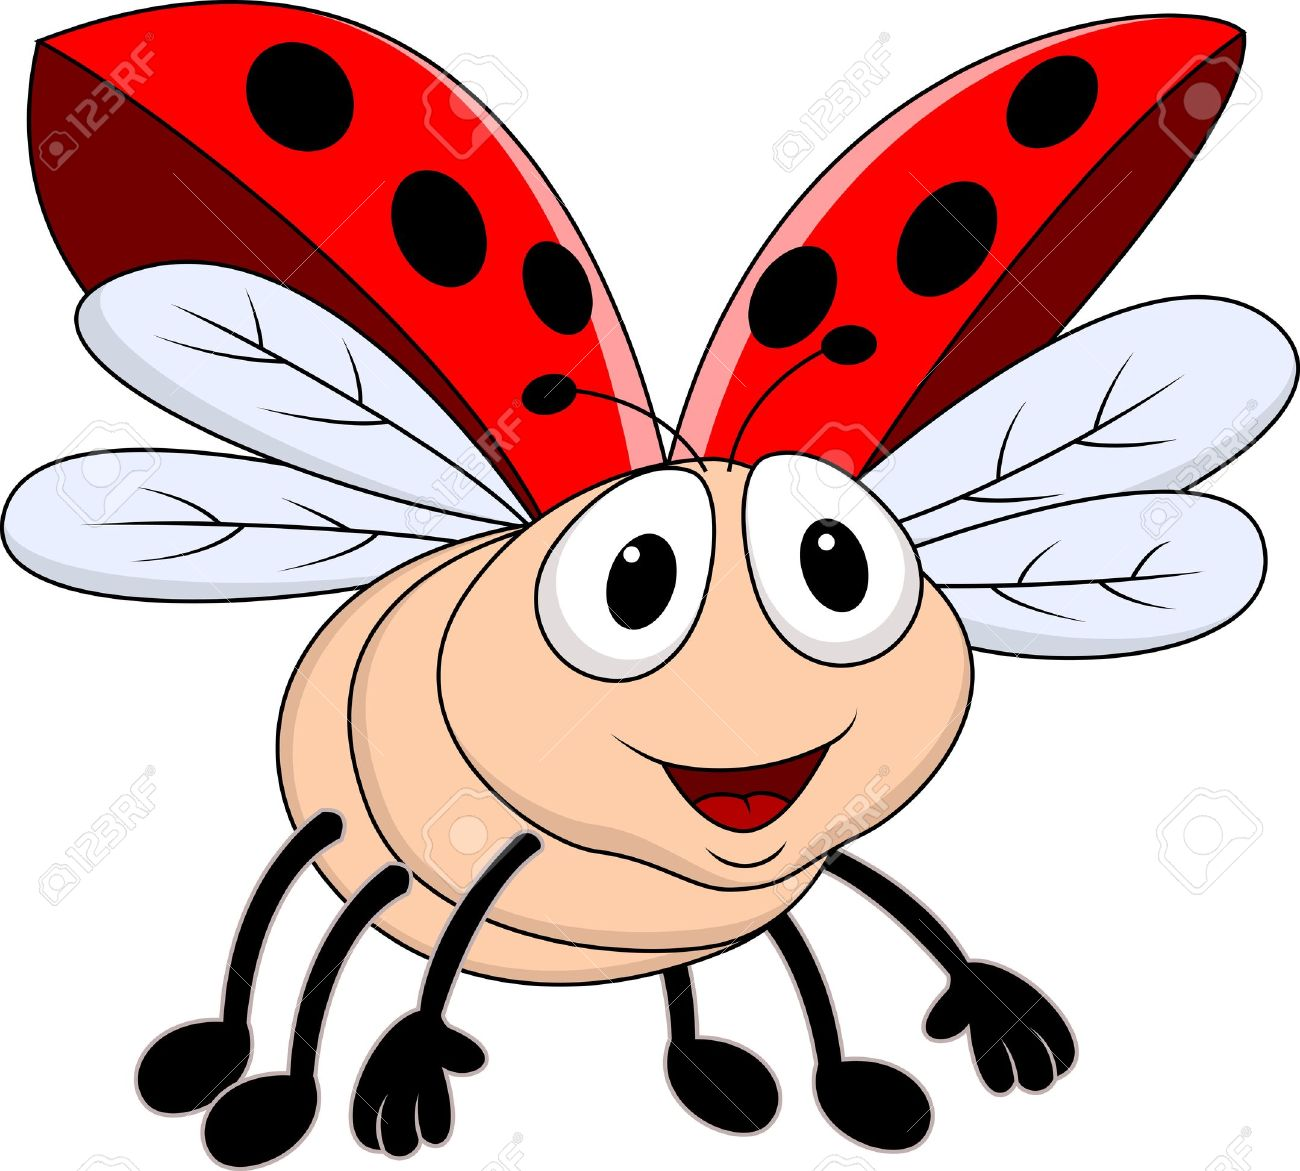 Lady Bug Flying Royalty Free Cliparts, Vectors, And Stock.